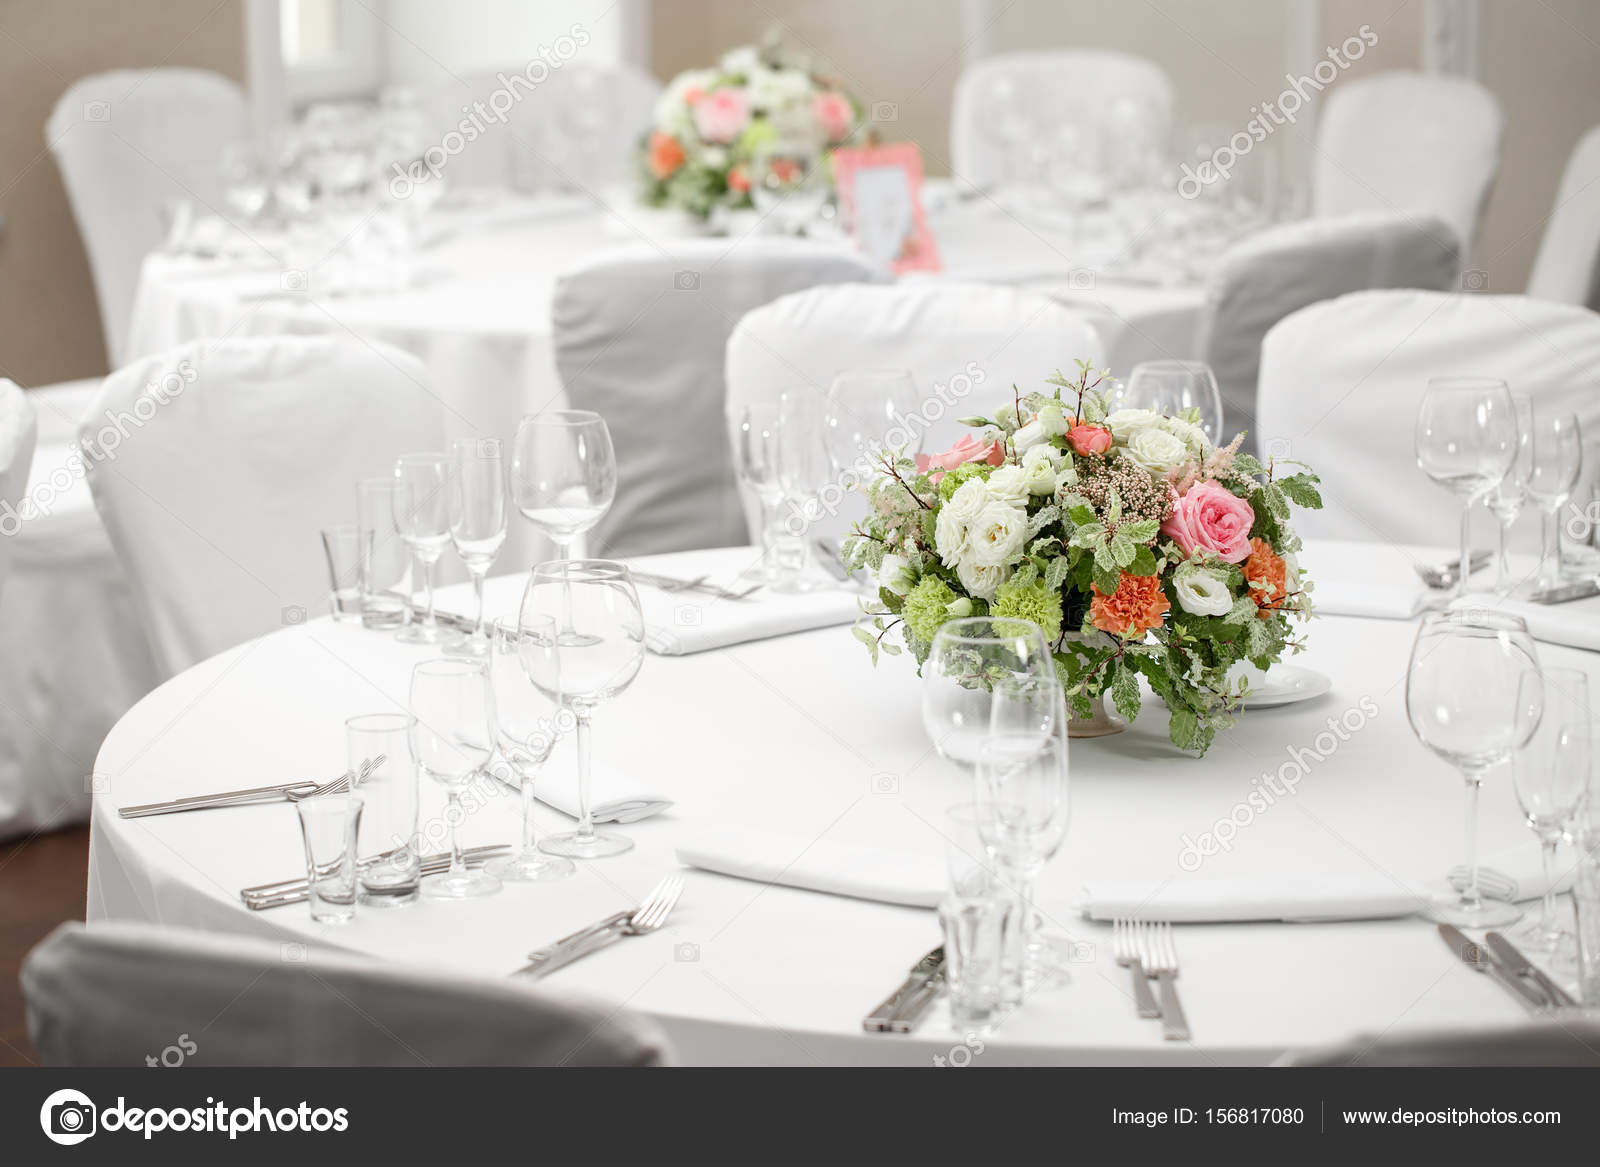 Table setting festive round tables ready for guests. u2014 Stock Photo & table setting festive round tables ready for guests. u2014 Stock Photo ...